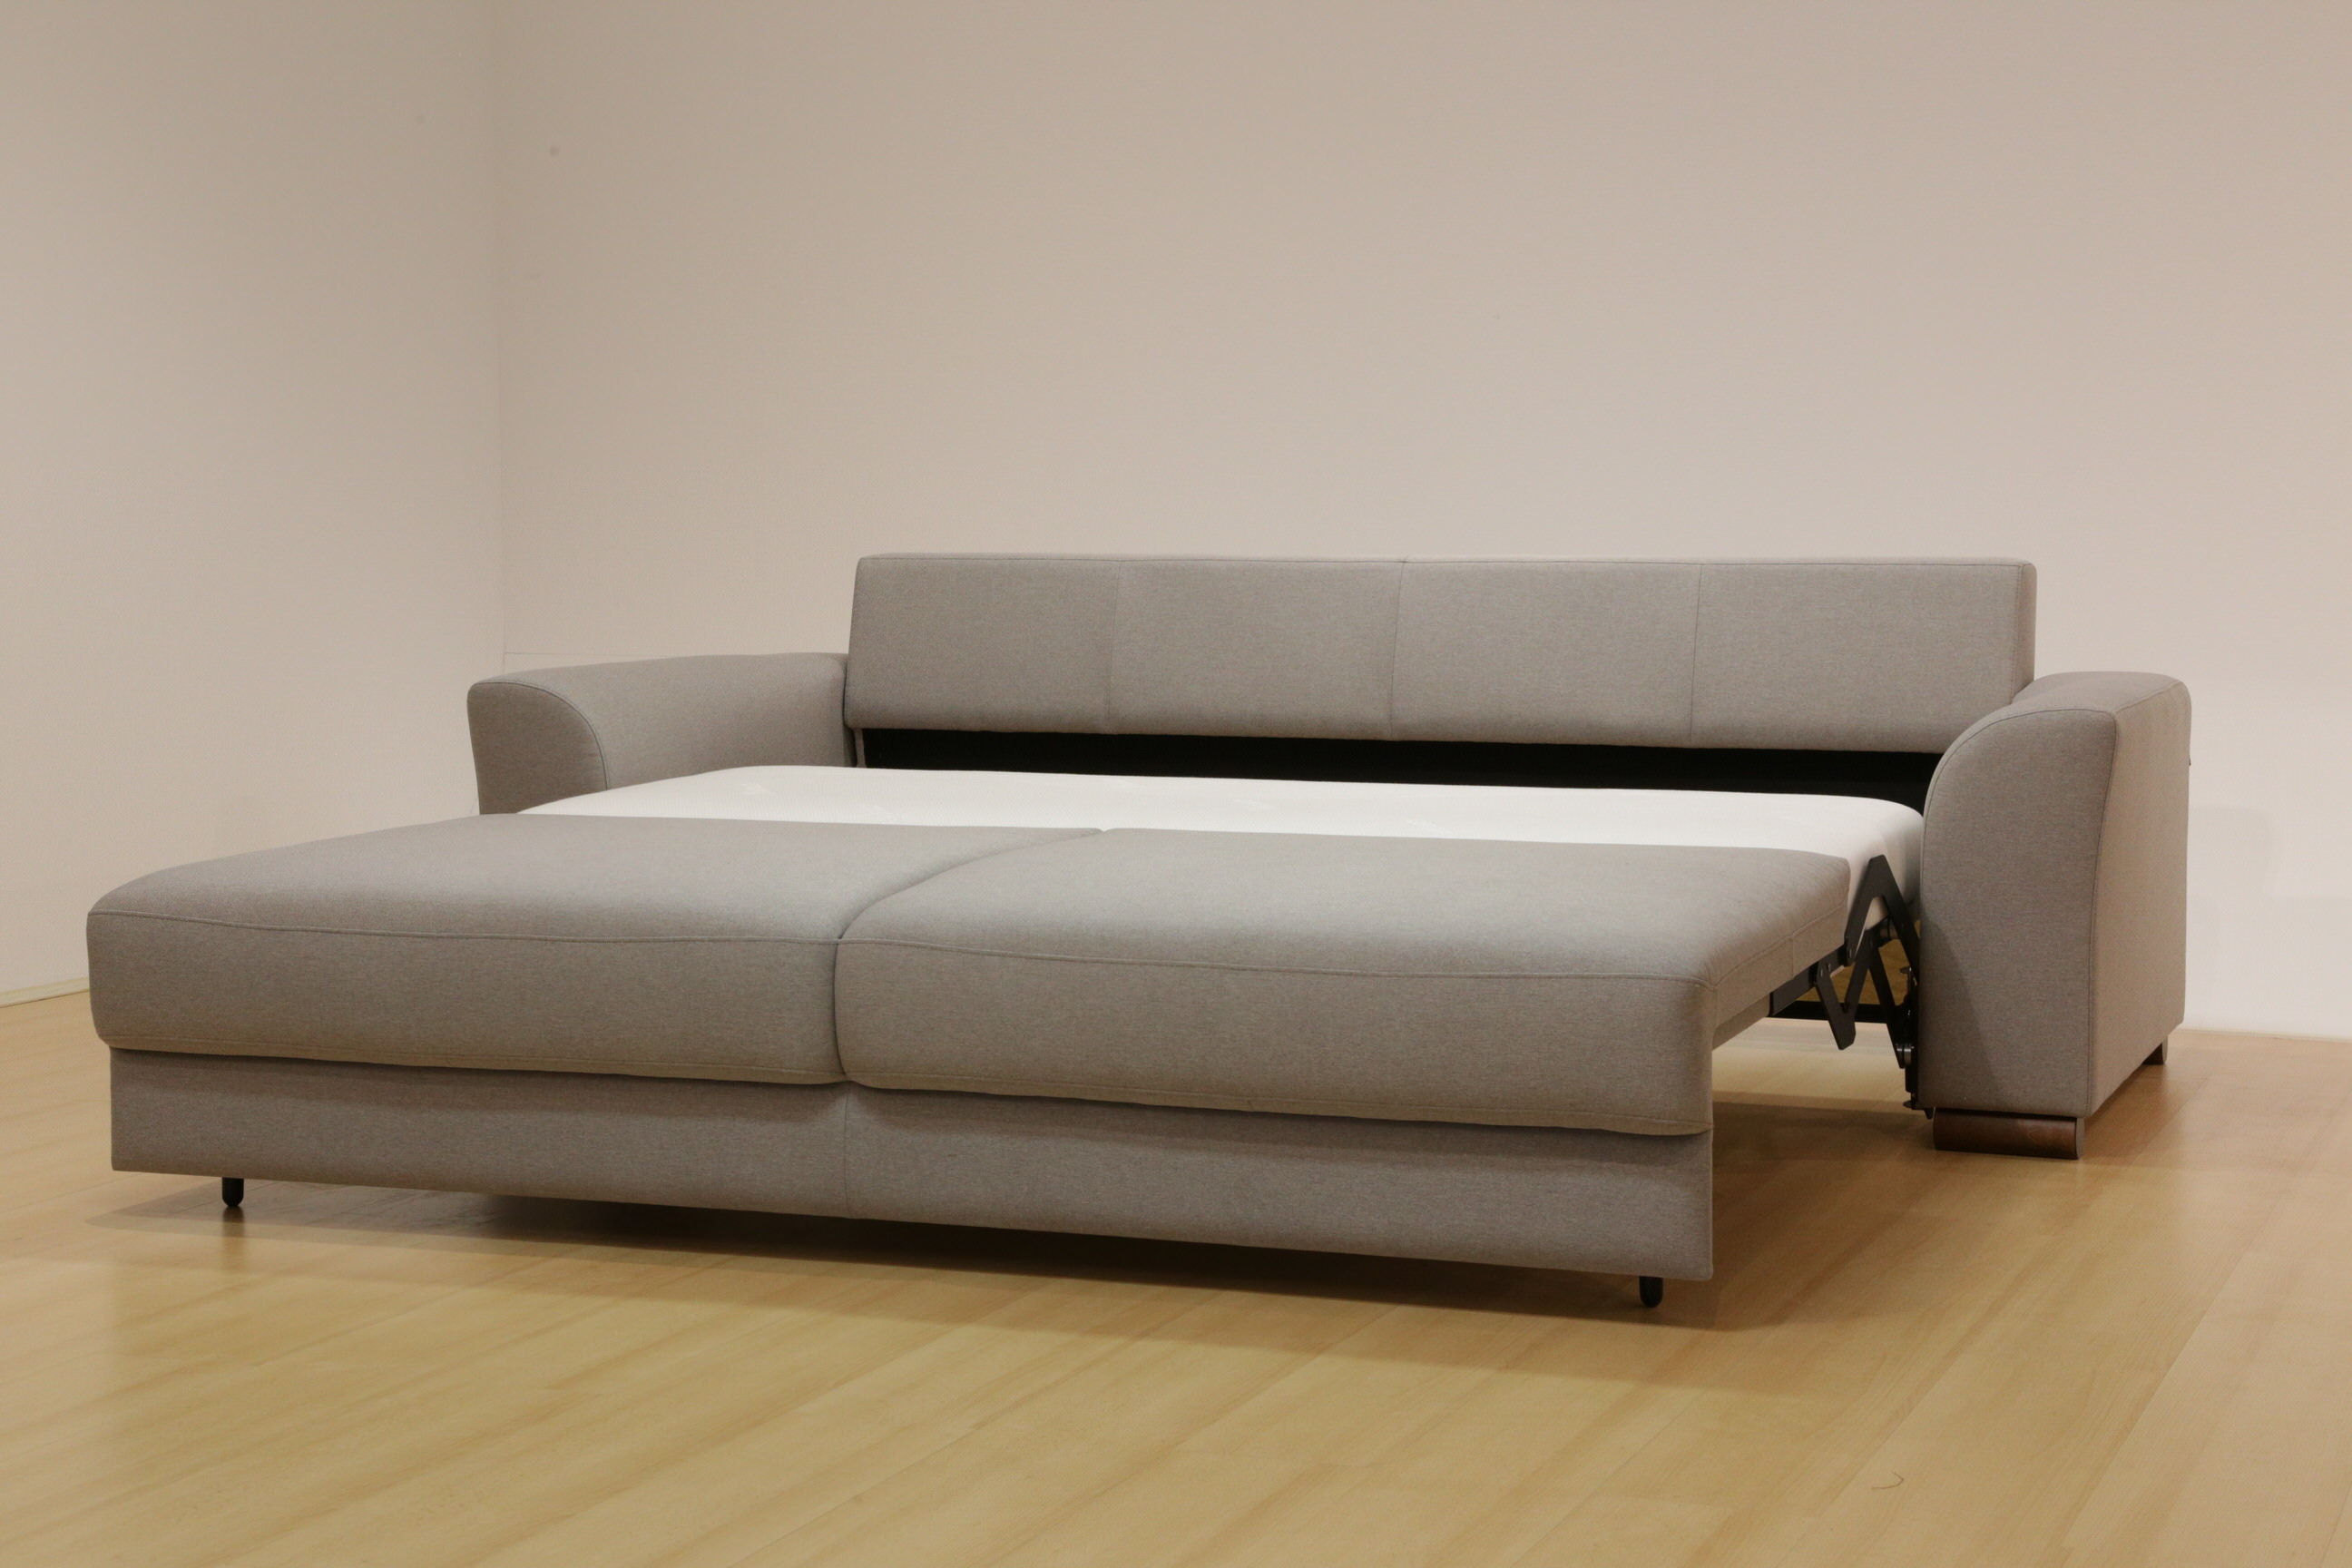 Malibu Sofa Sleeper (King Size) by Luonto Furniture